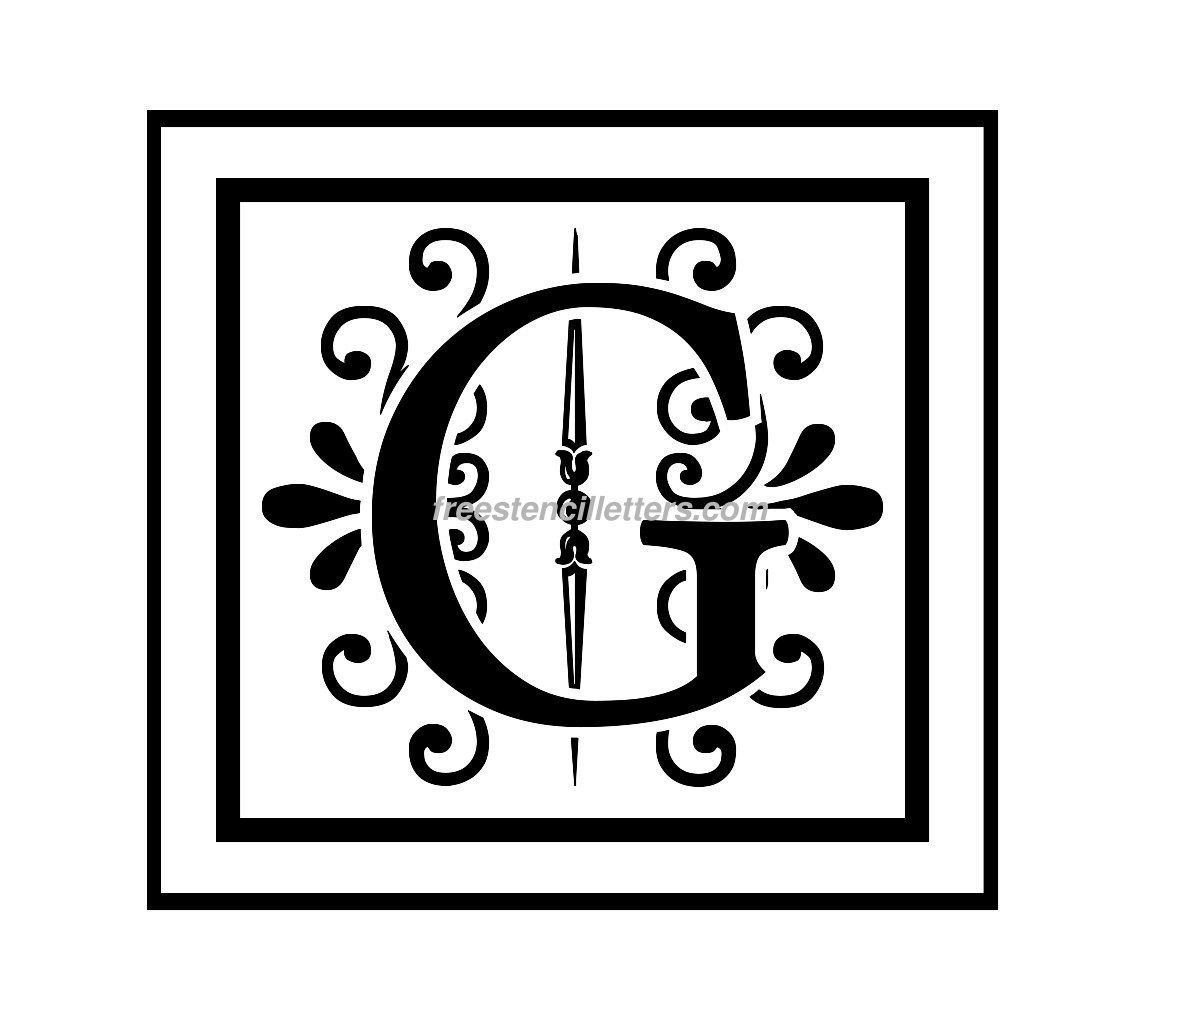 photograph about Printable Monogram Stencil called Print G Letter Stencil - Cost-free Stencil Letters